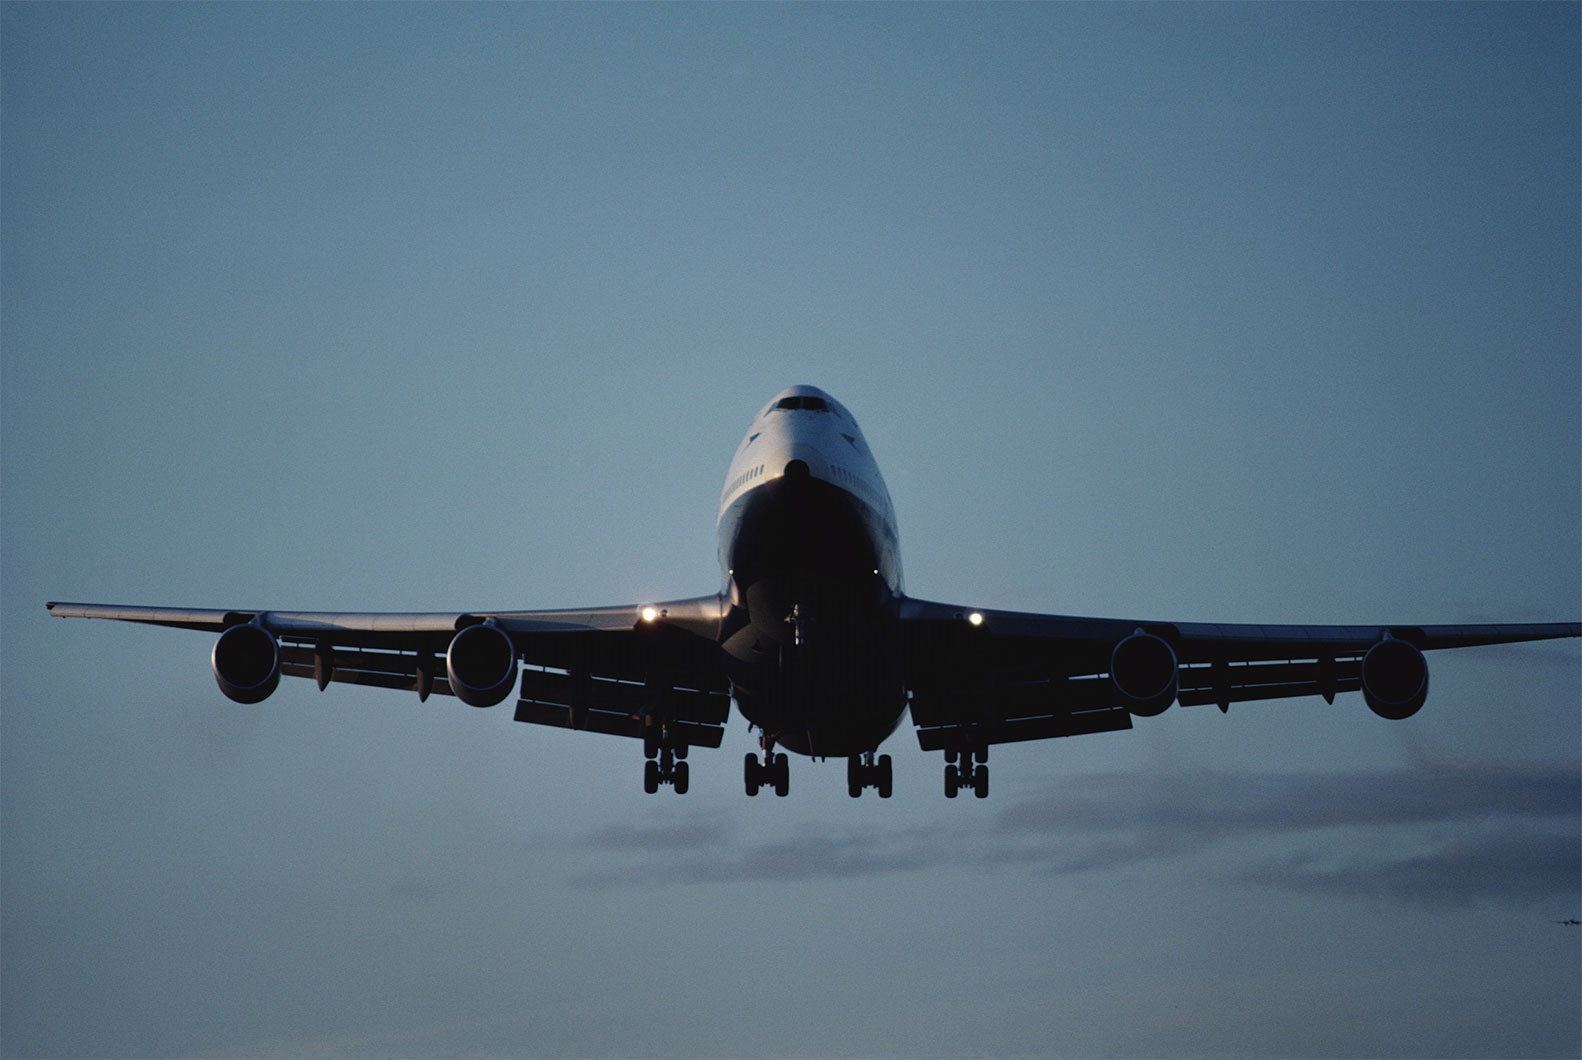 plane flying with landing gear down and lights on